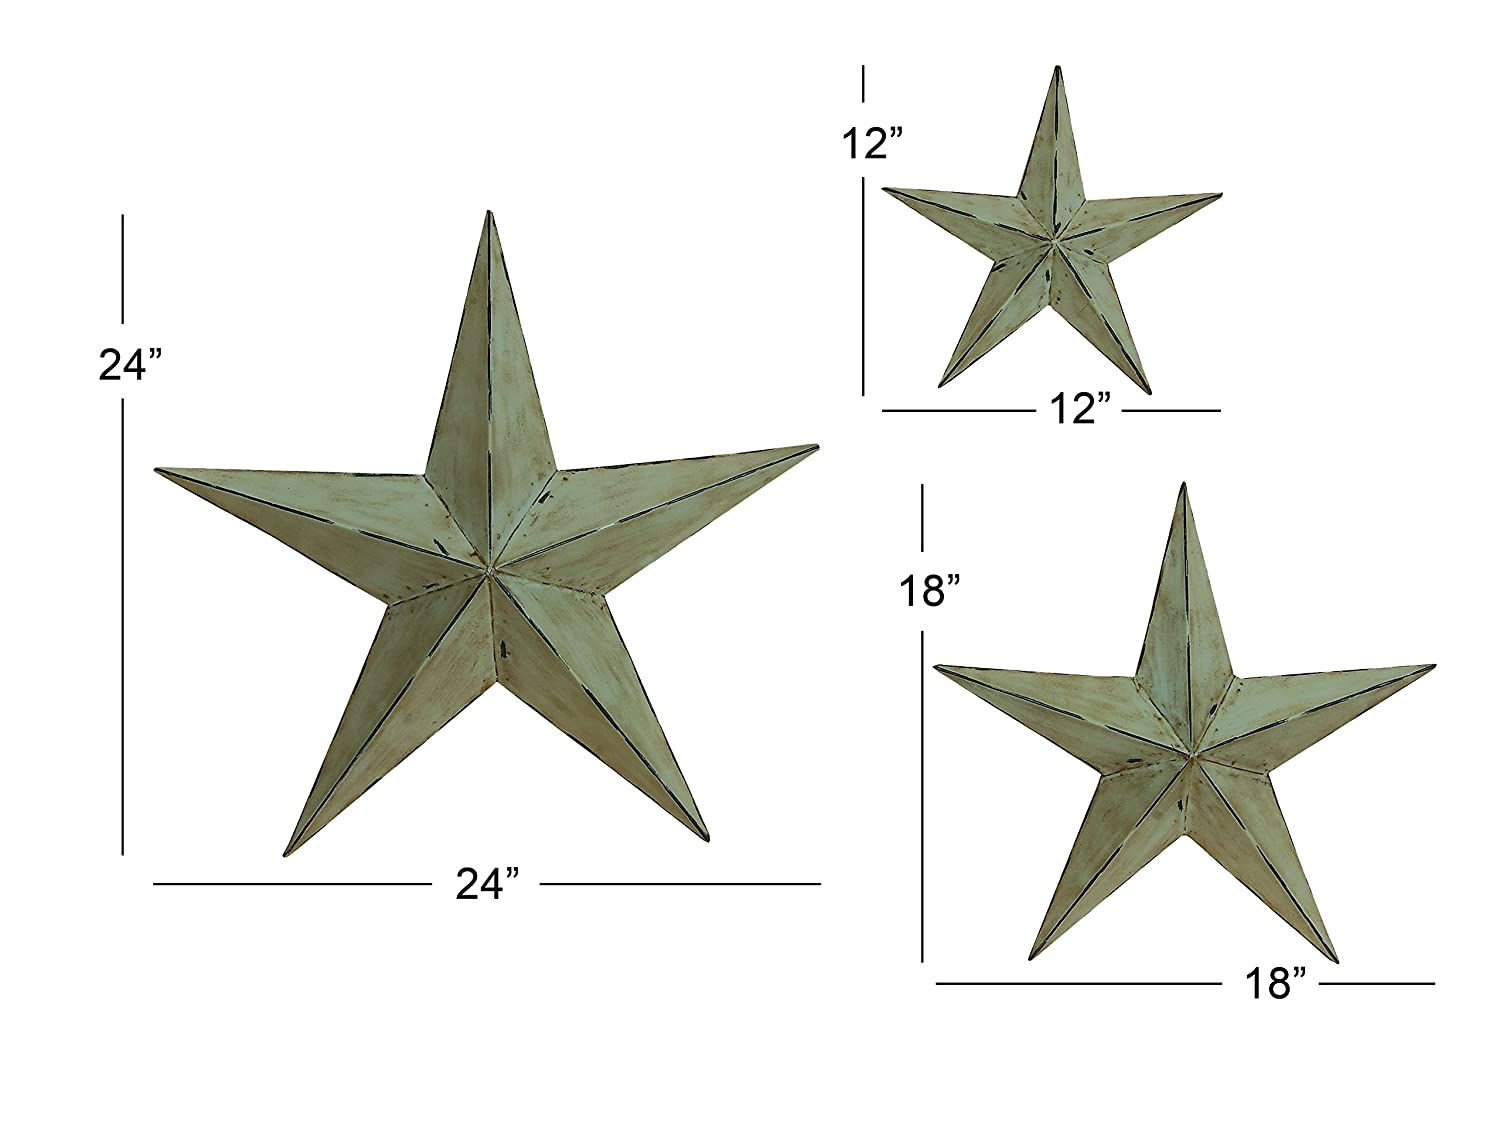 Amazon deco 79 metal wall star 24 inch 18 inch and 12 inch amazon deco 79 metal wall star 24 inch 18 inch and 12 inch set of 3 wall sculptures garden outdoor amipublicfo Gallery